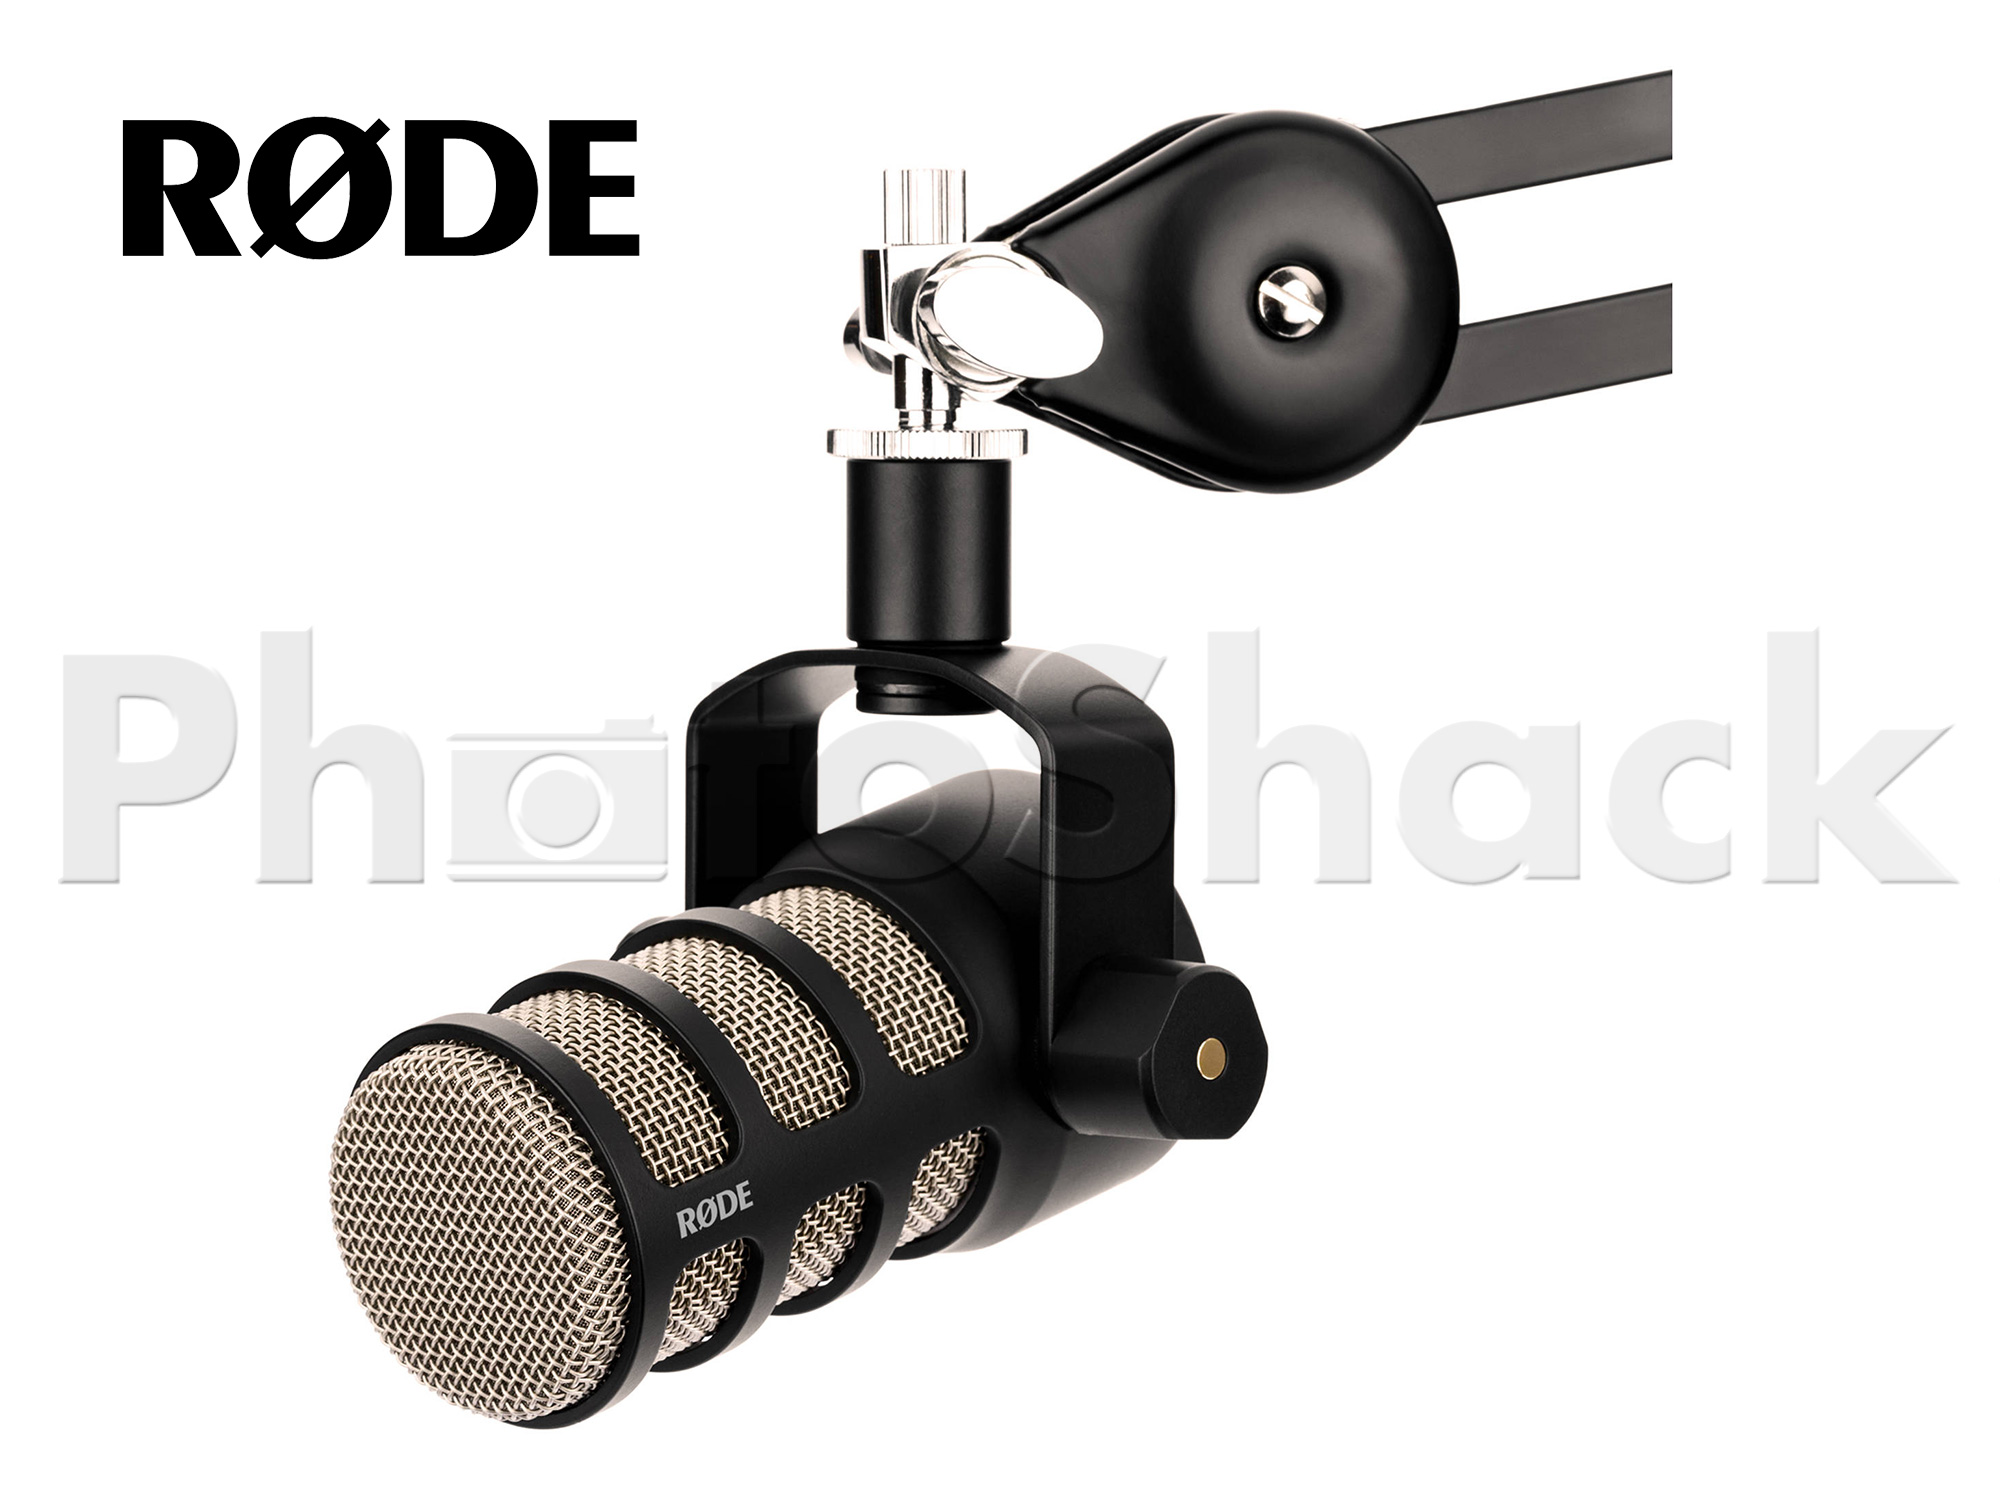 rode podmic dynamic podcasting microphone rodpodmic photoshack new zealand. Black Bedroom Furniture Sets. Home Design Ideas